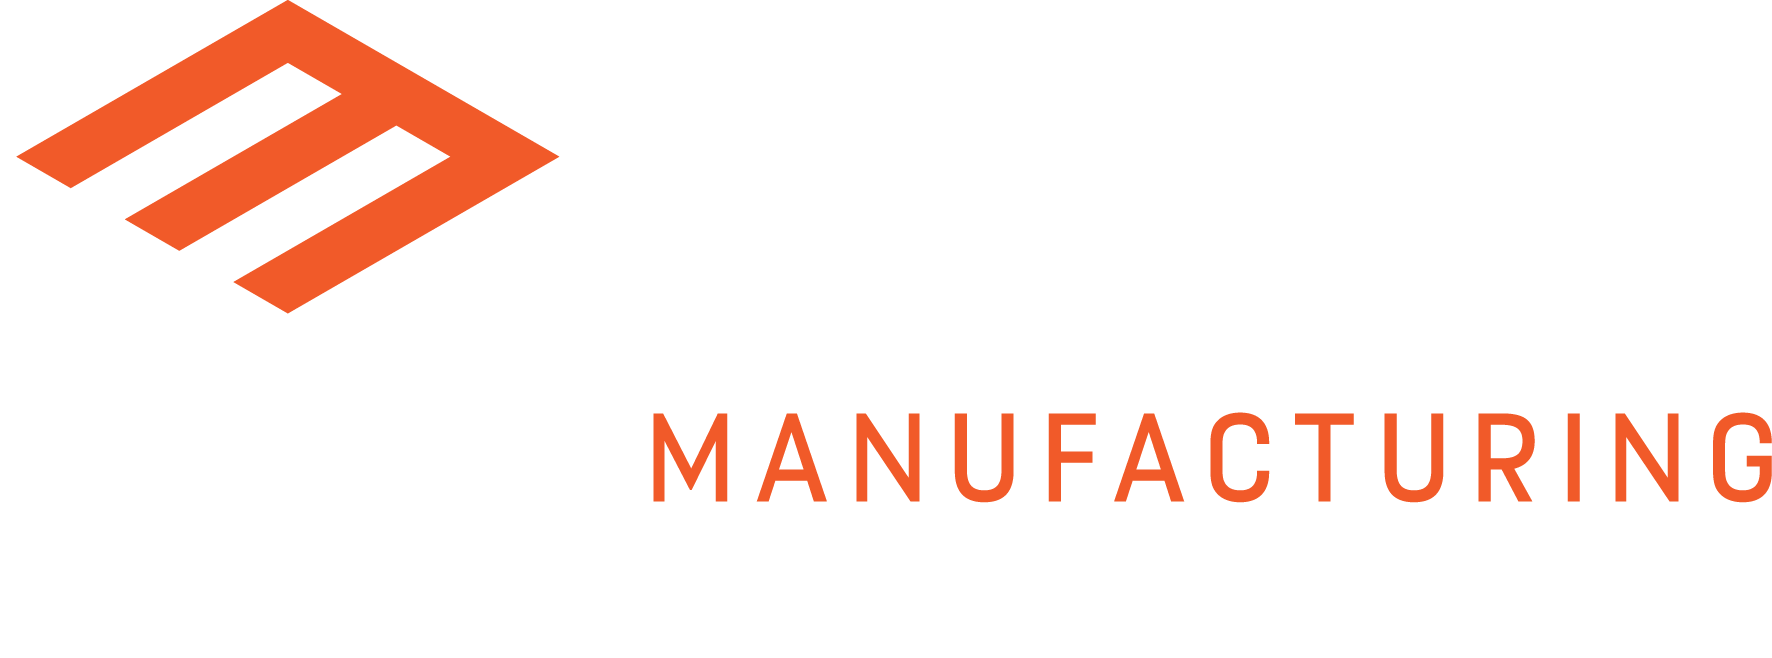 EDGE Digital Manufacturing